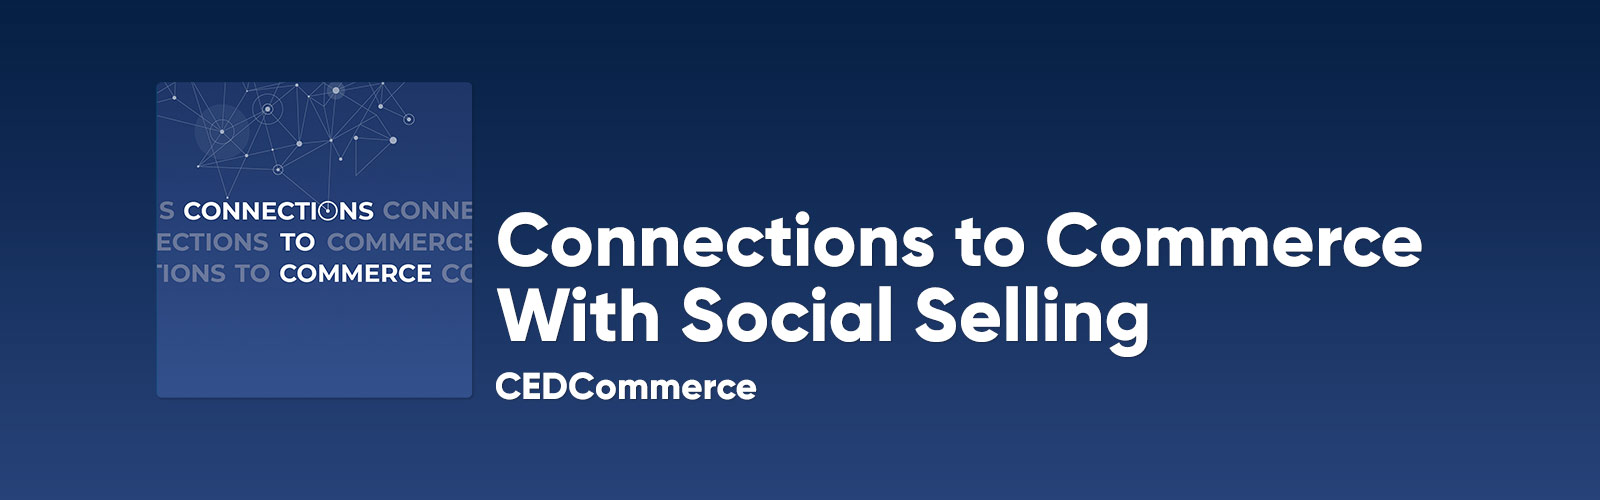 Connections to Commerce with Social Selling